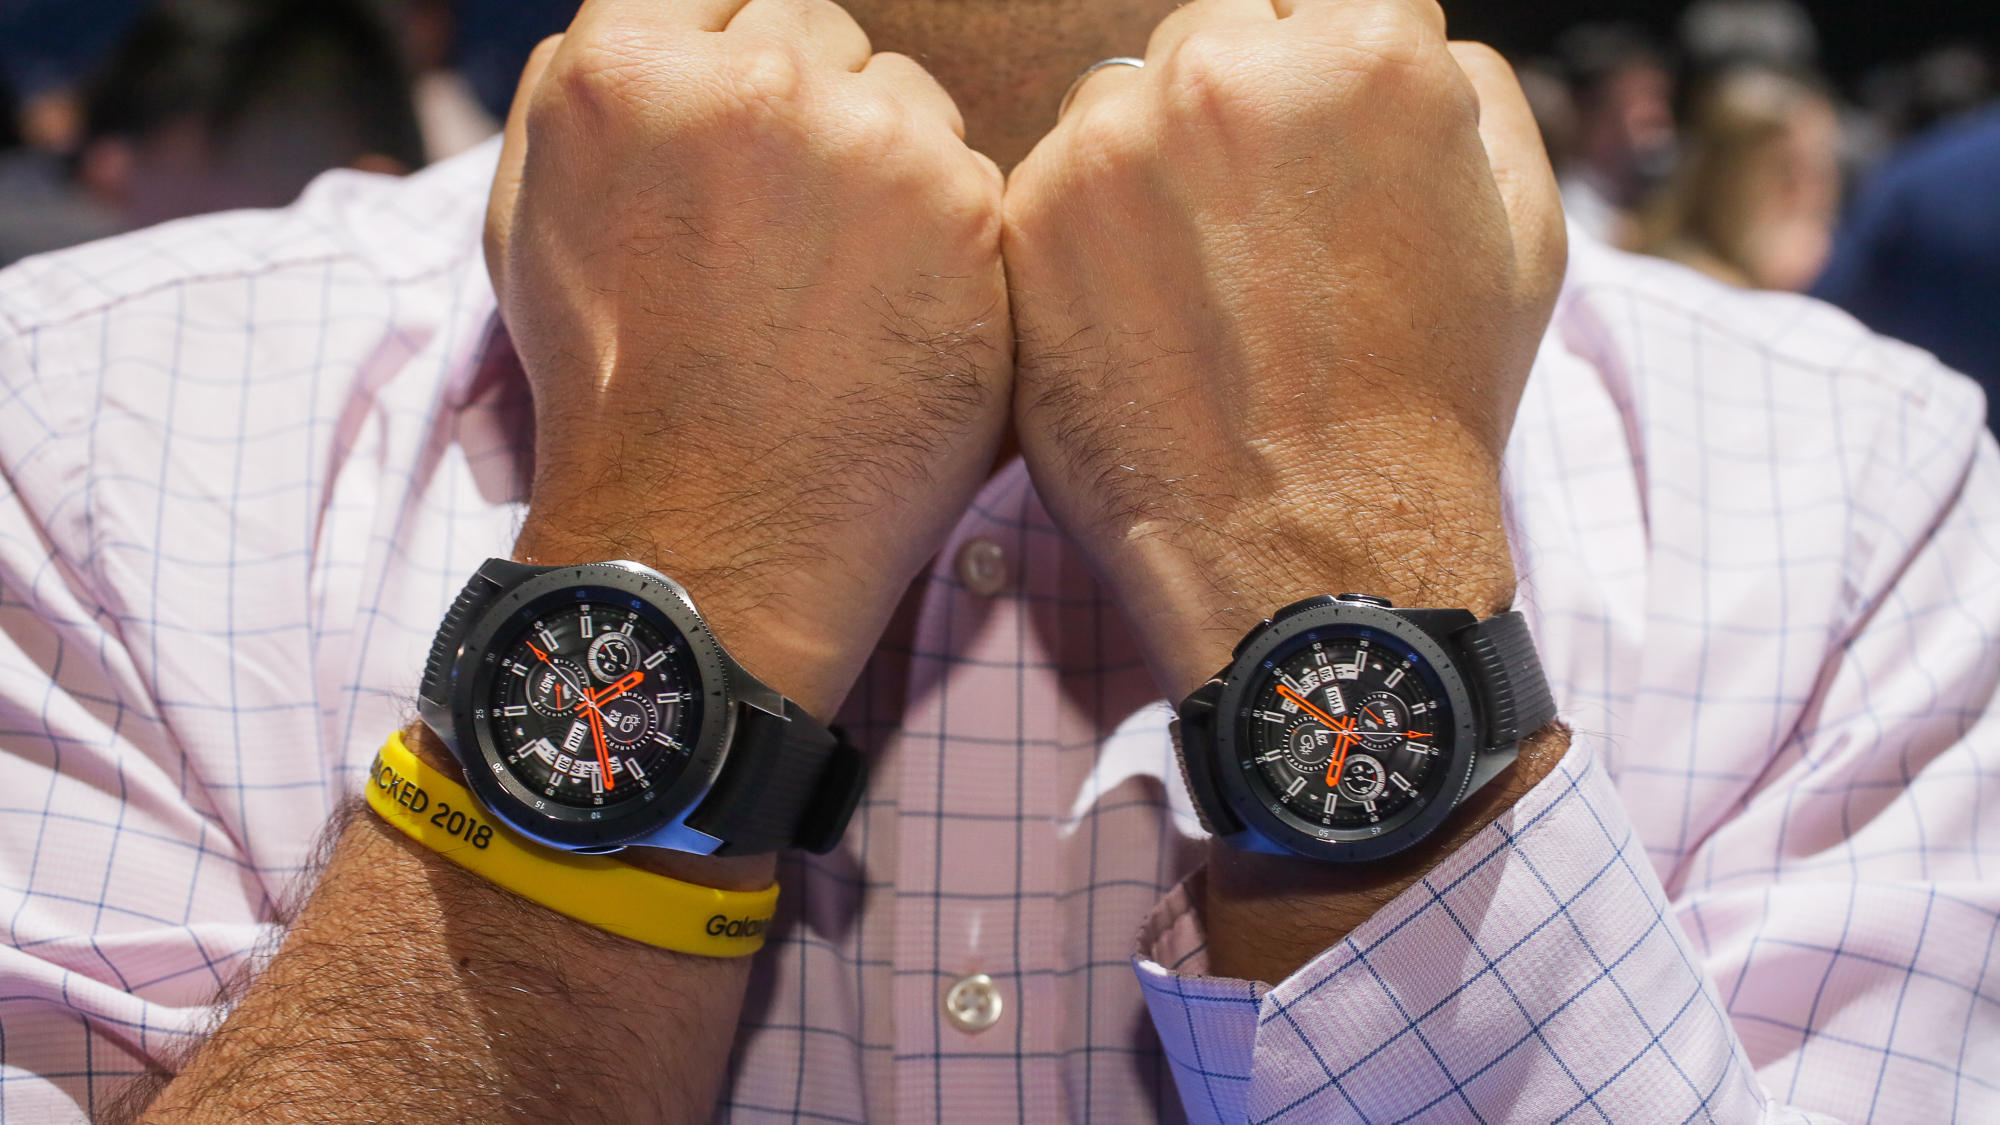 Samsung Galaxy Watch Ongoing Review 4 Ways It S Better Than Apple Watch So Far Cnet